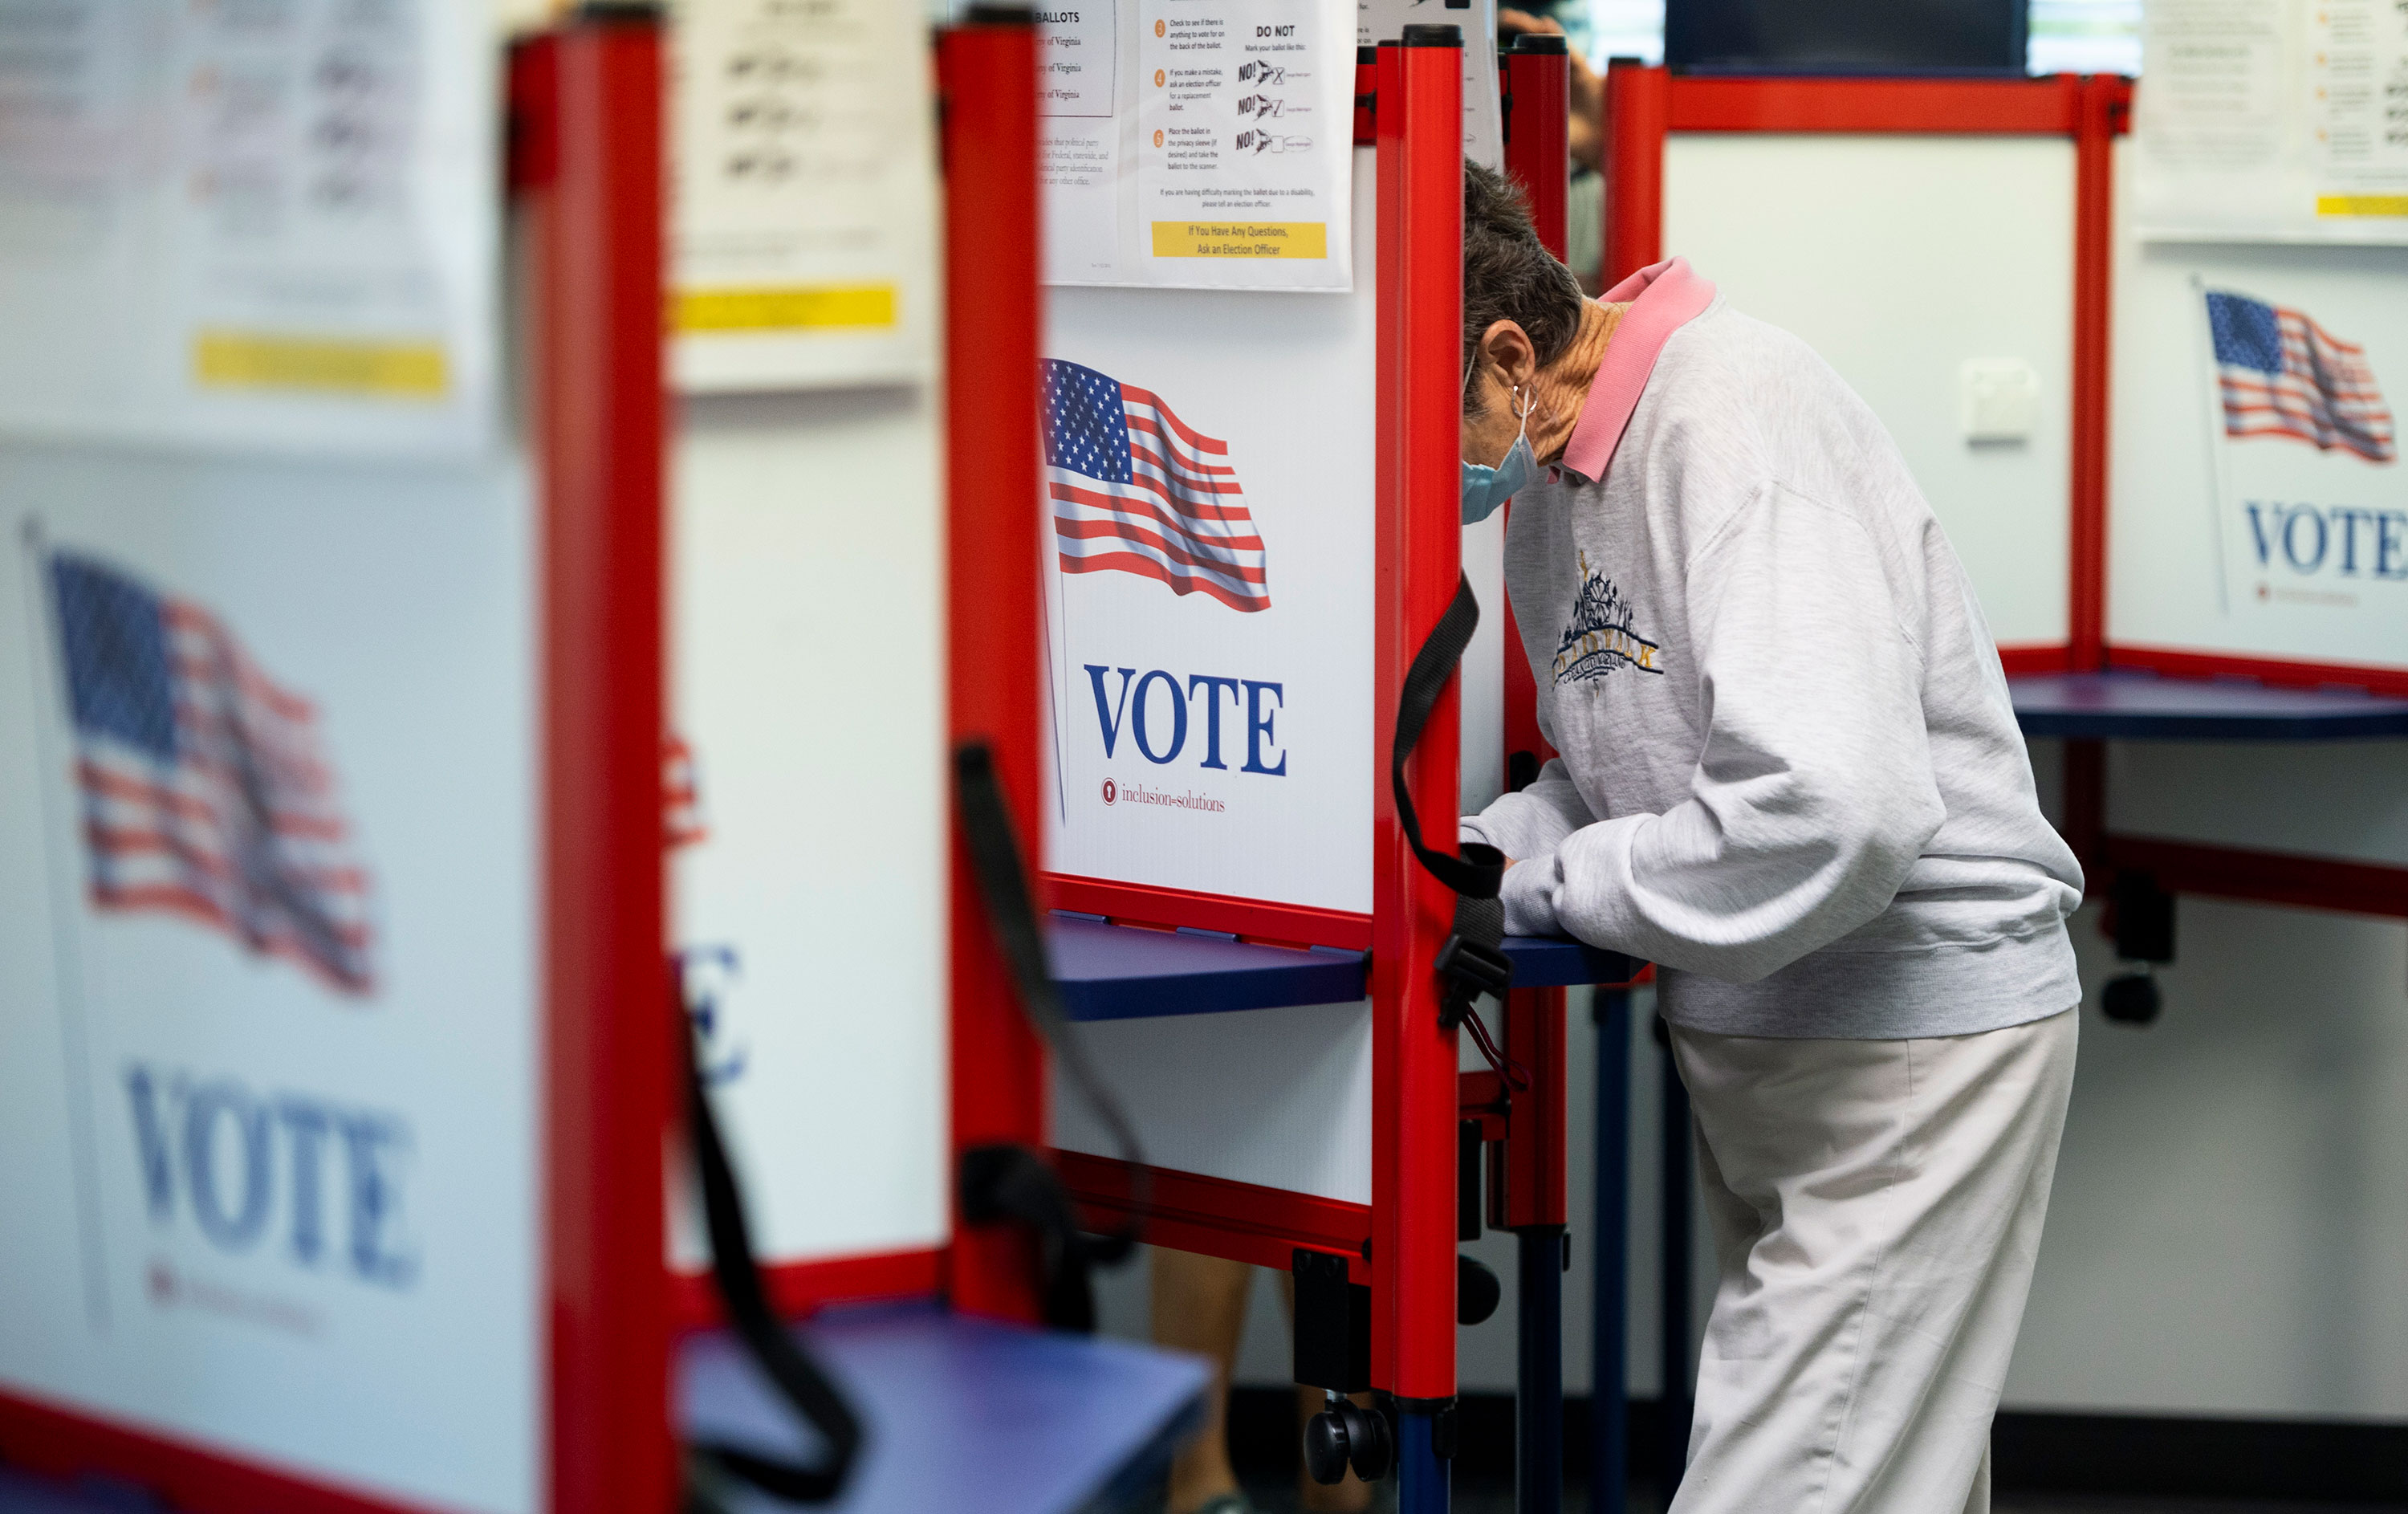 A voter fills out her ballot on the first day of early voting in Leesburg, Virginia, on September 18.